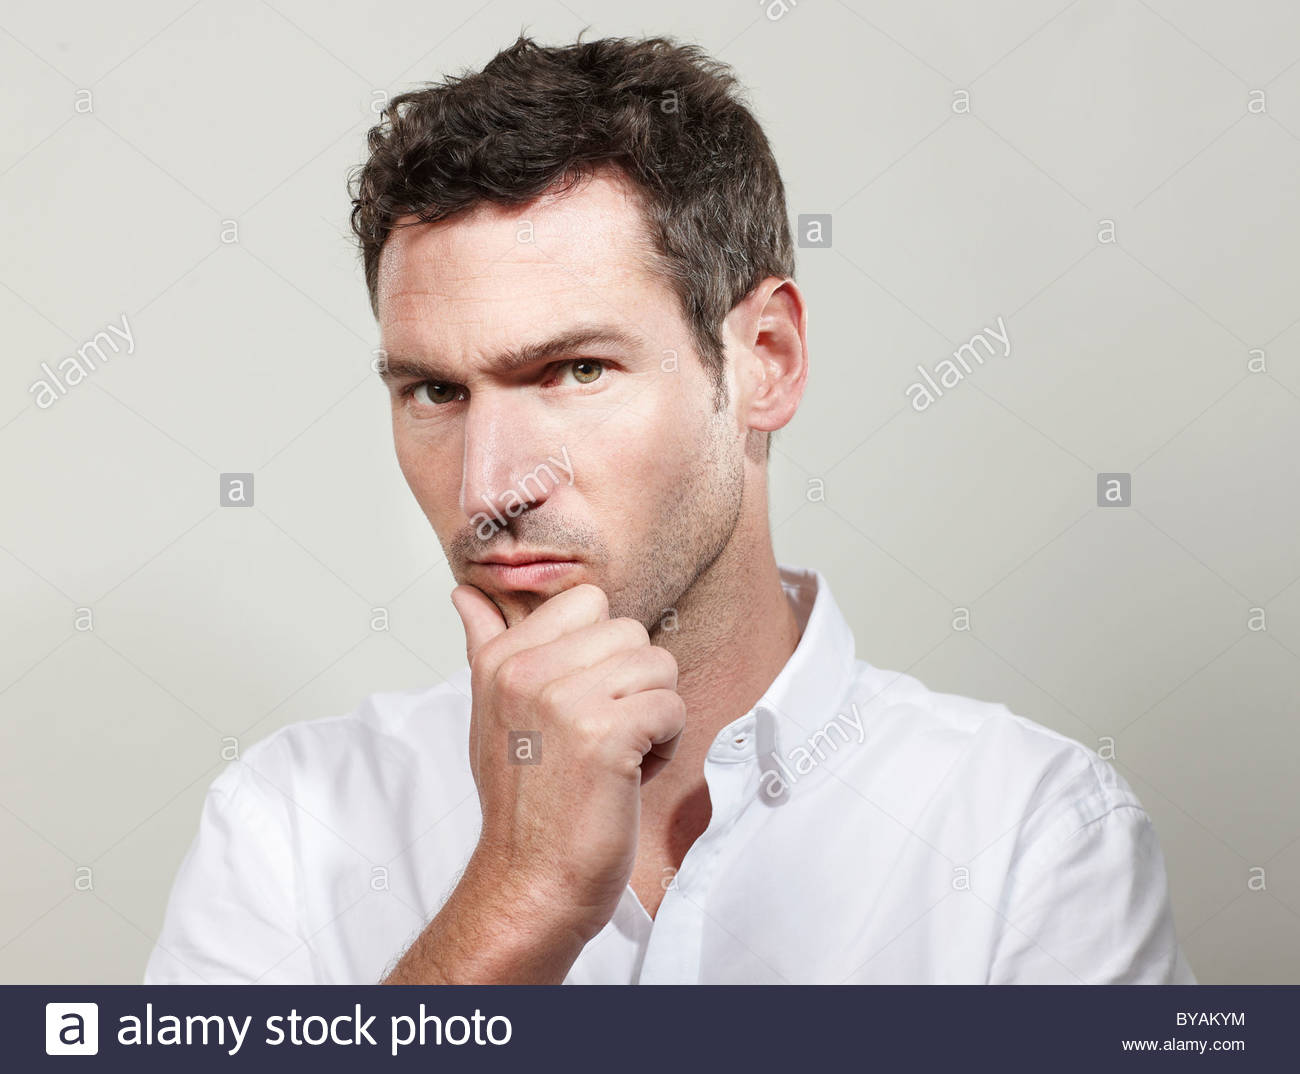 Portrait of man looking critical - Stock Image